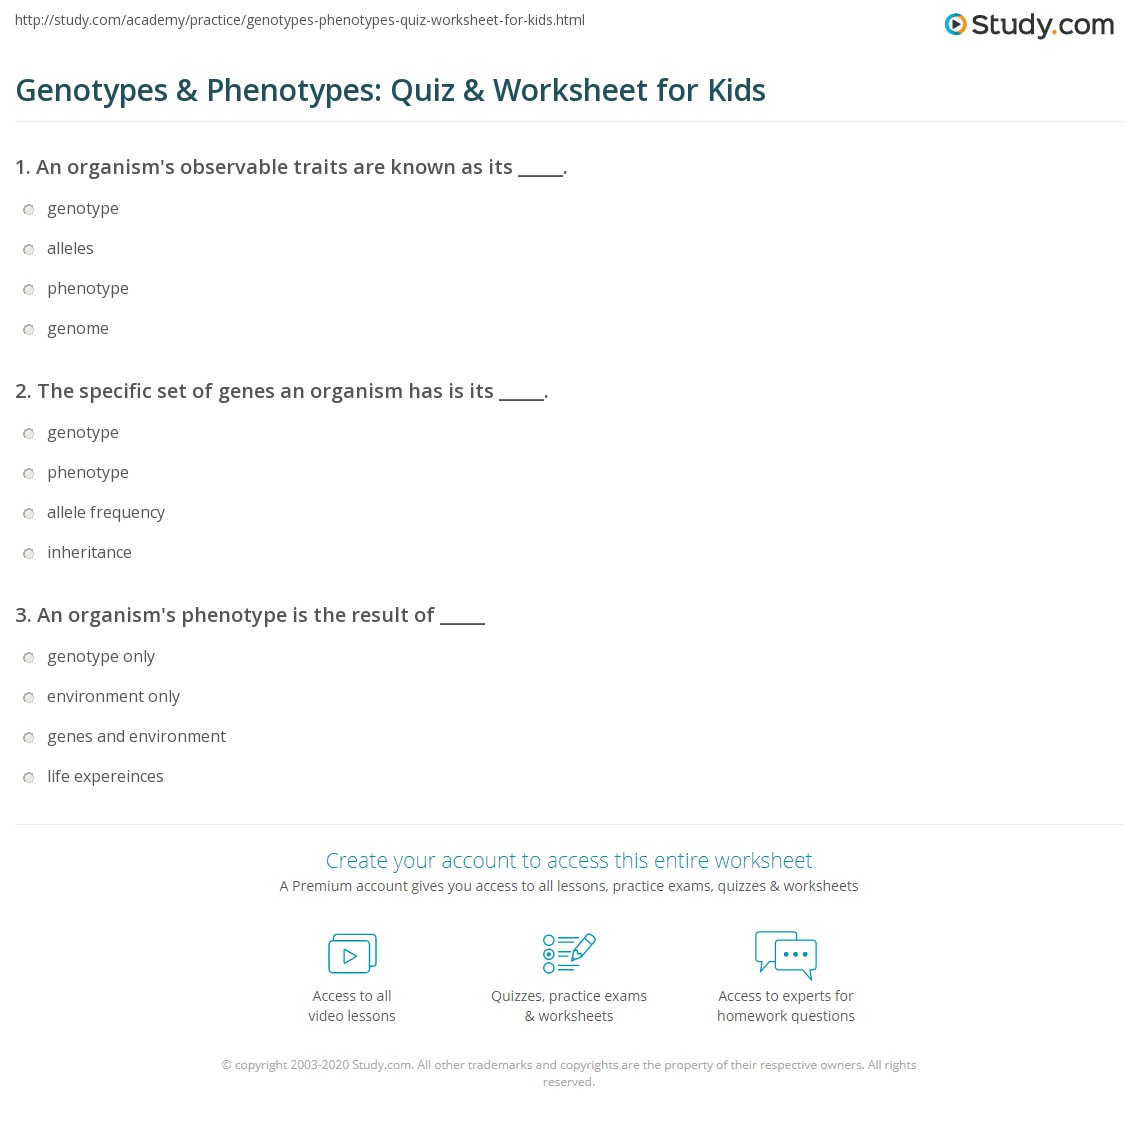 Genotypes & Phenotypes: Quiz & Worksheet for Kids | Study.com